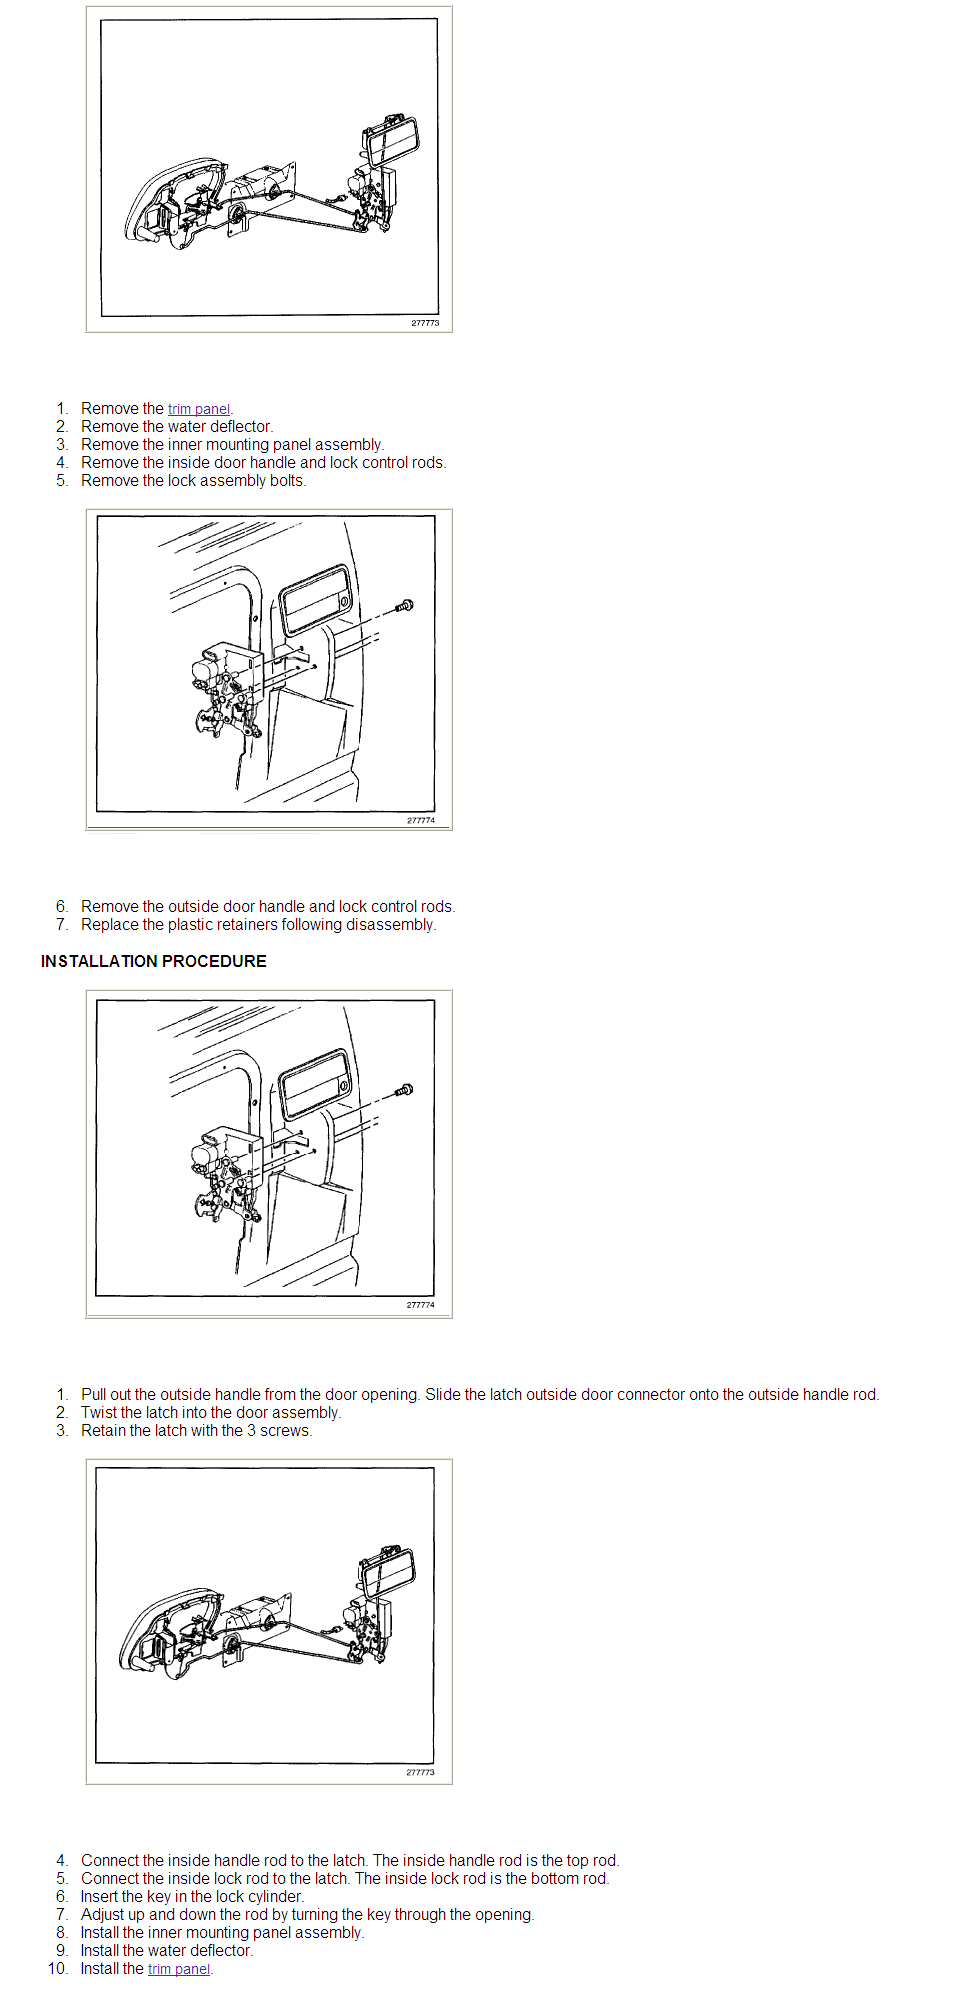 Exploded Diagram For 1999 Yukon Drivers Outside Door